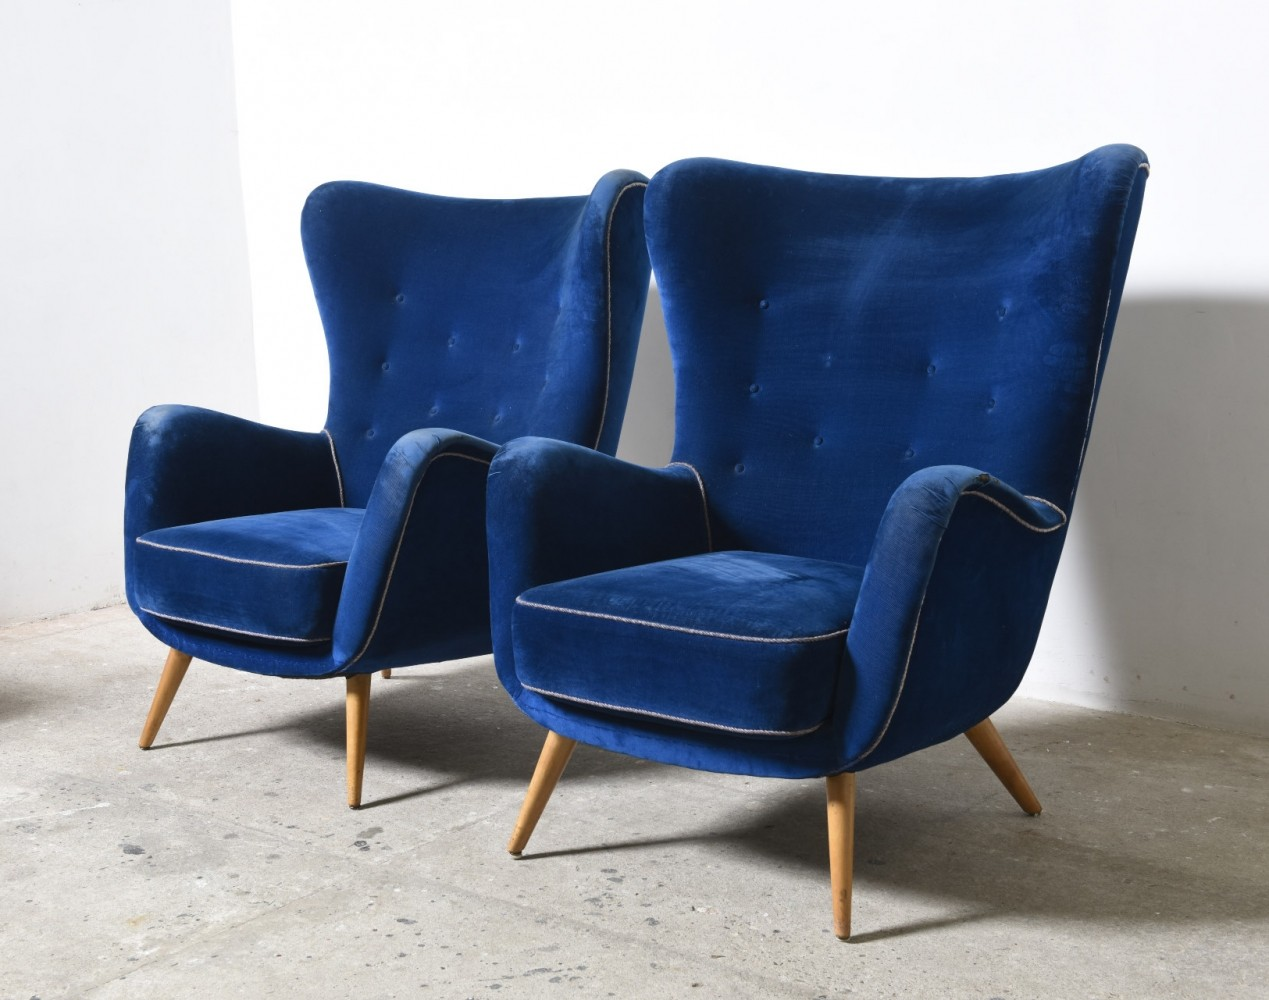 Blue Velvet Chair Set Of Two Large Oversized Italian Blue Velvet Wing Back Easy Chairs Barwick